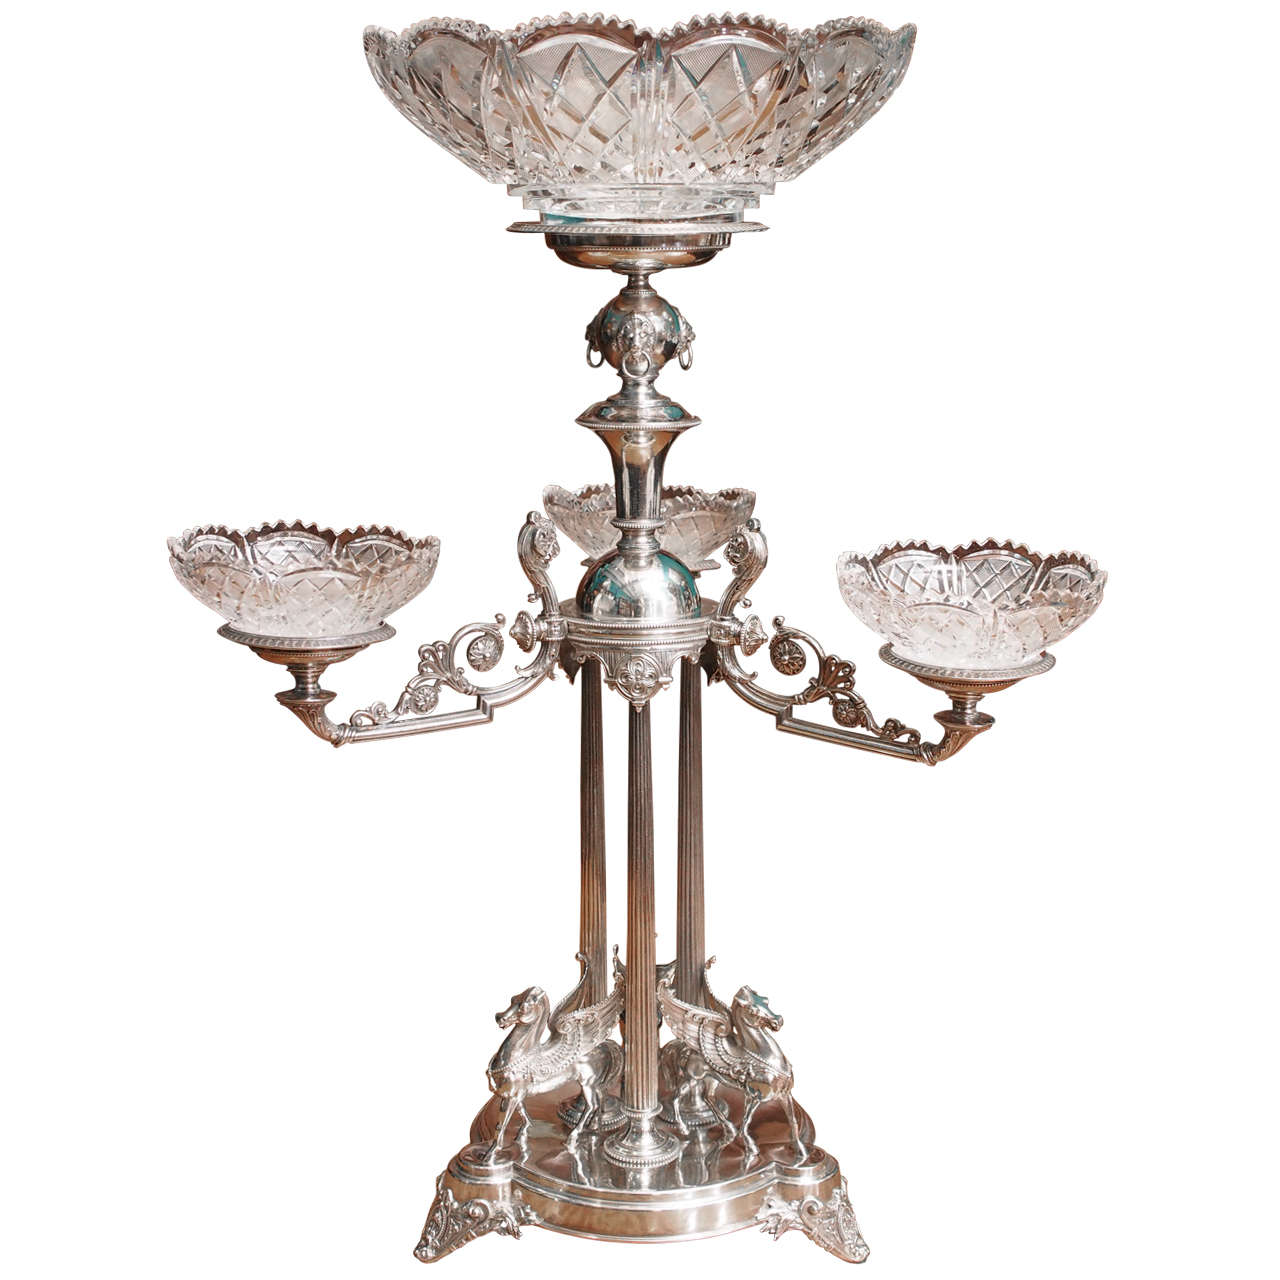 decor using antique epergne for dining table accessories ForDecorative Dining Table Accessories